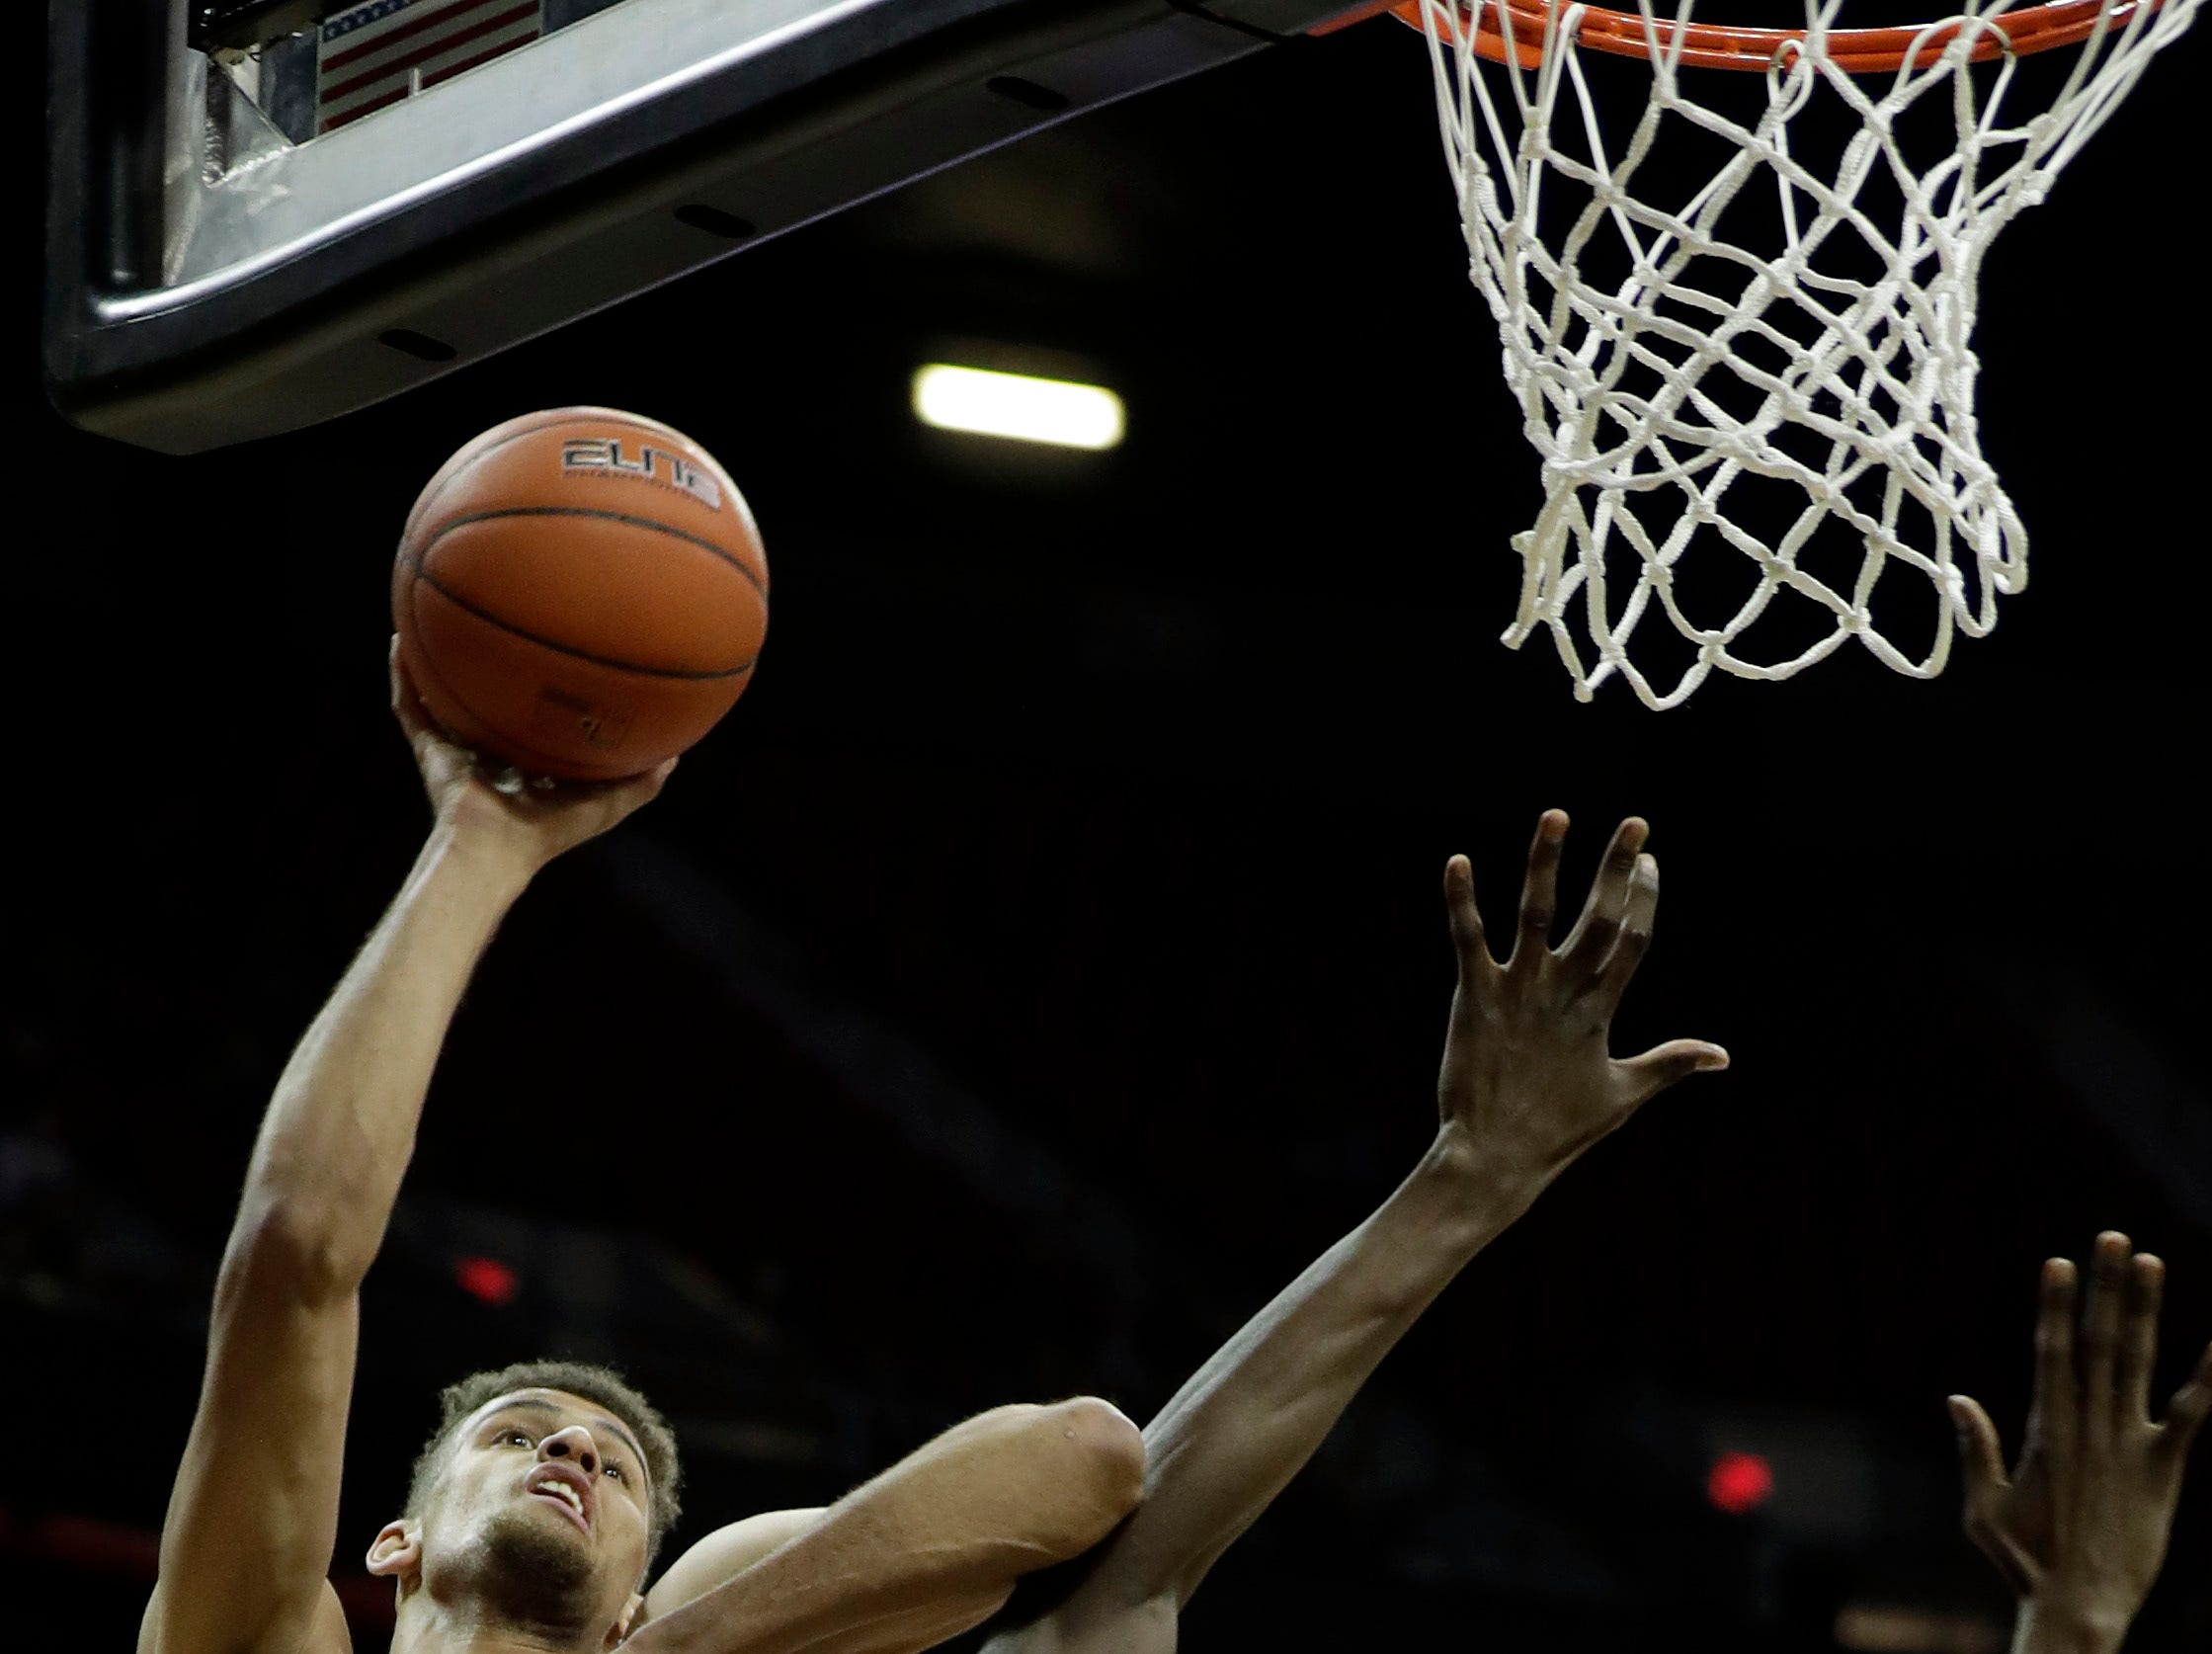 San Diego State's Nathan Mensah (31) defends as Nevada's Trey Porter shoots during the first half of an NCAA college basketball game in the Mountain West Conference men's tournament Friday, March 15, 2019, in Las Vegas. (AP Photo/Isaac Brekken)